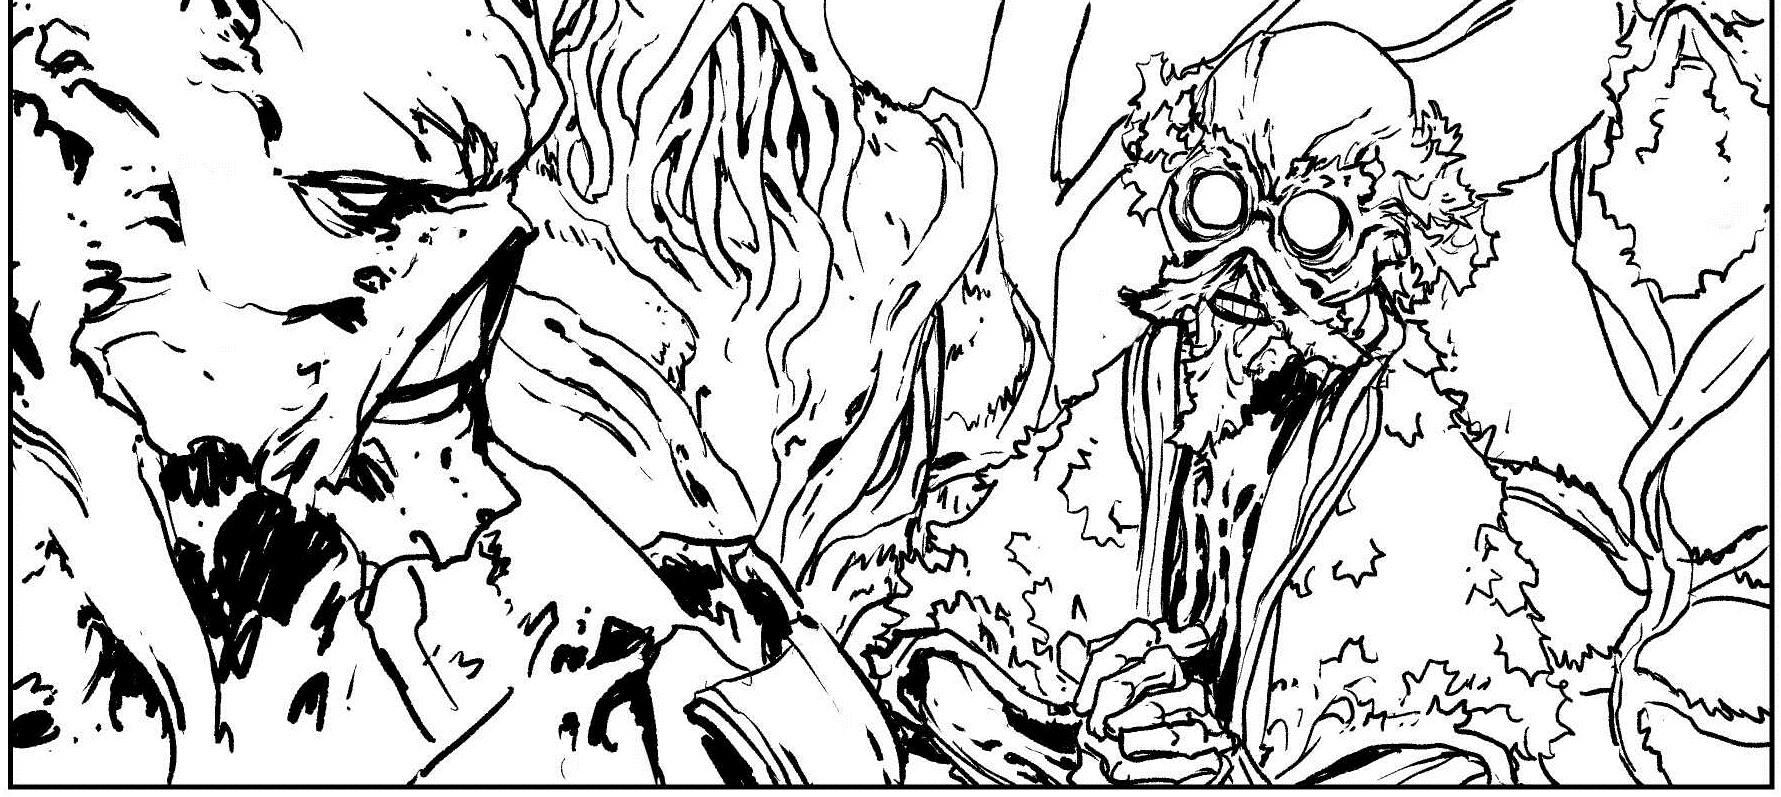 Panel from Swamp Thing #40, with art from Jesus Saiz. GORGEOUS.